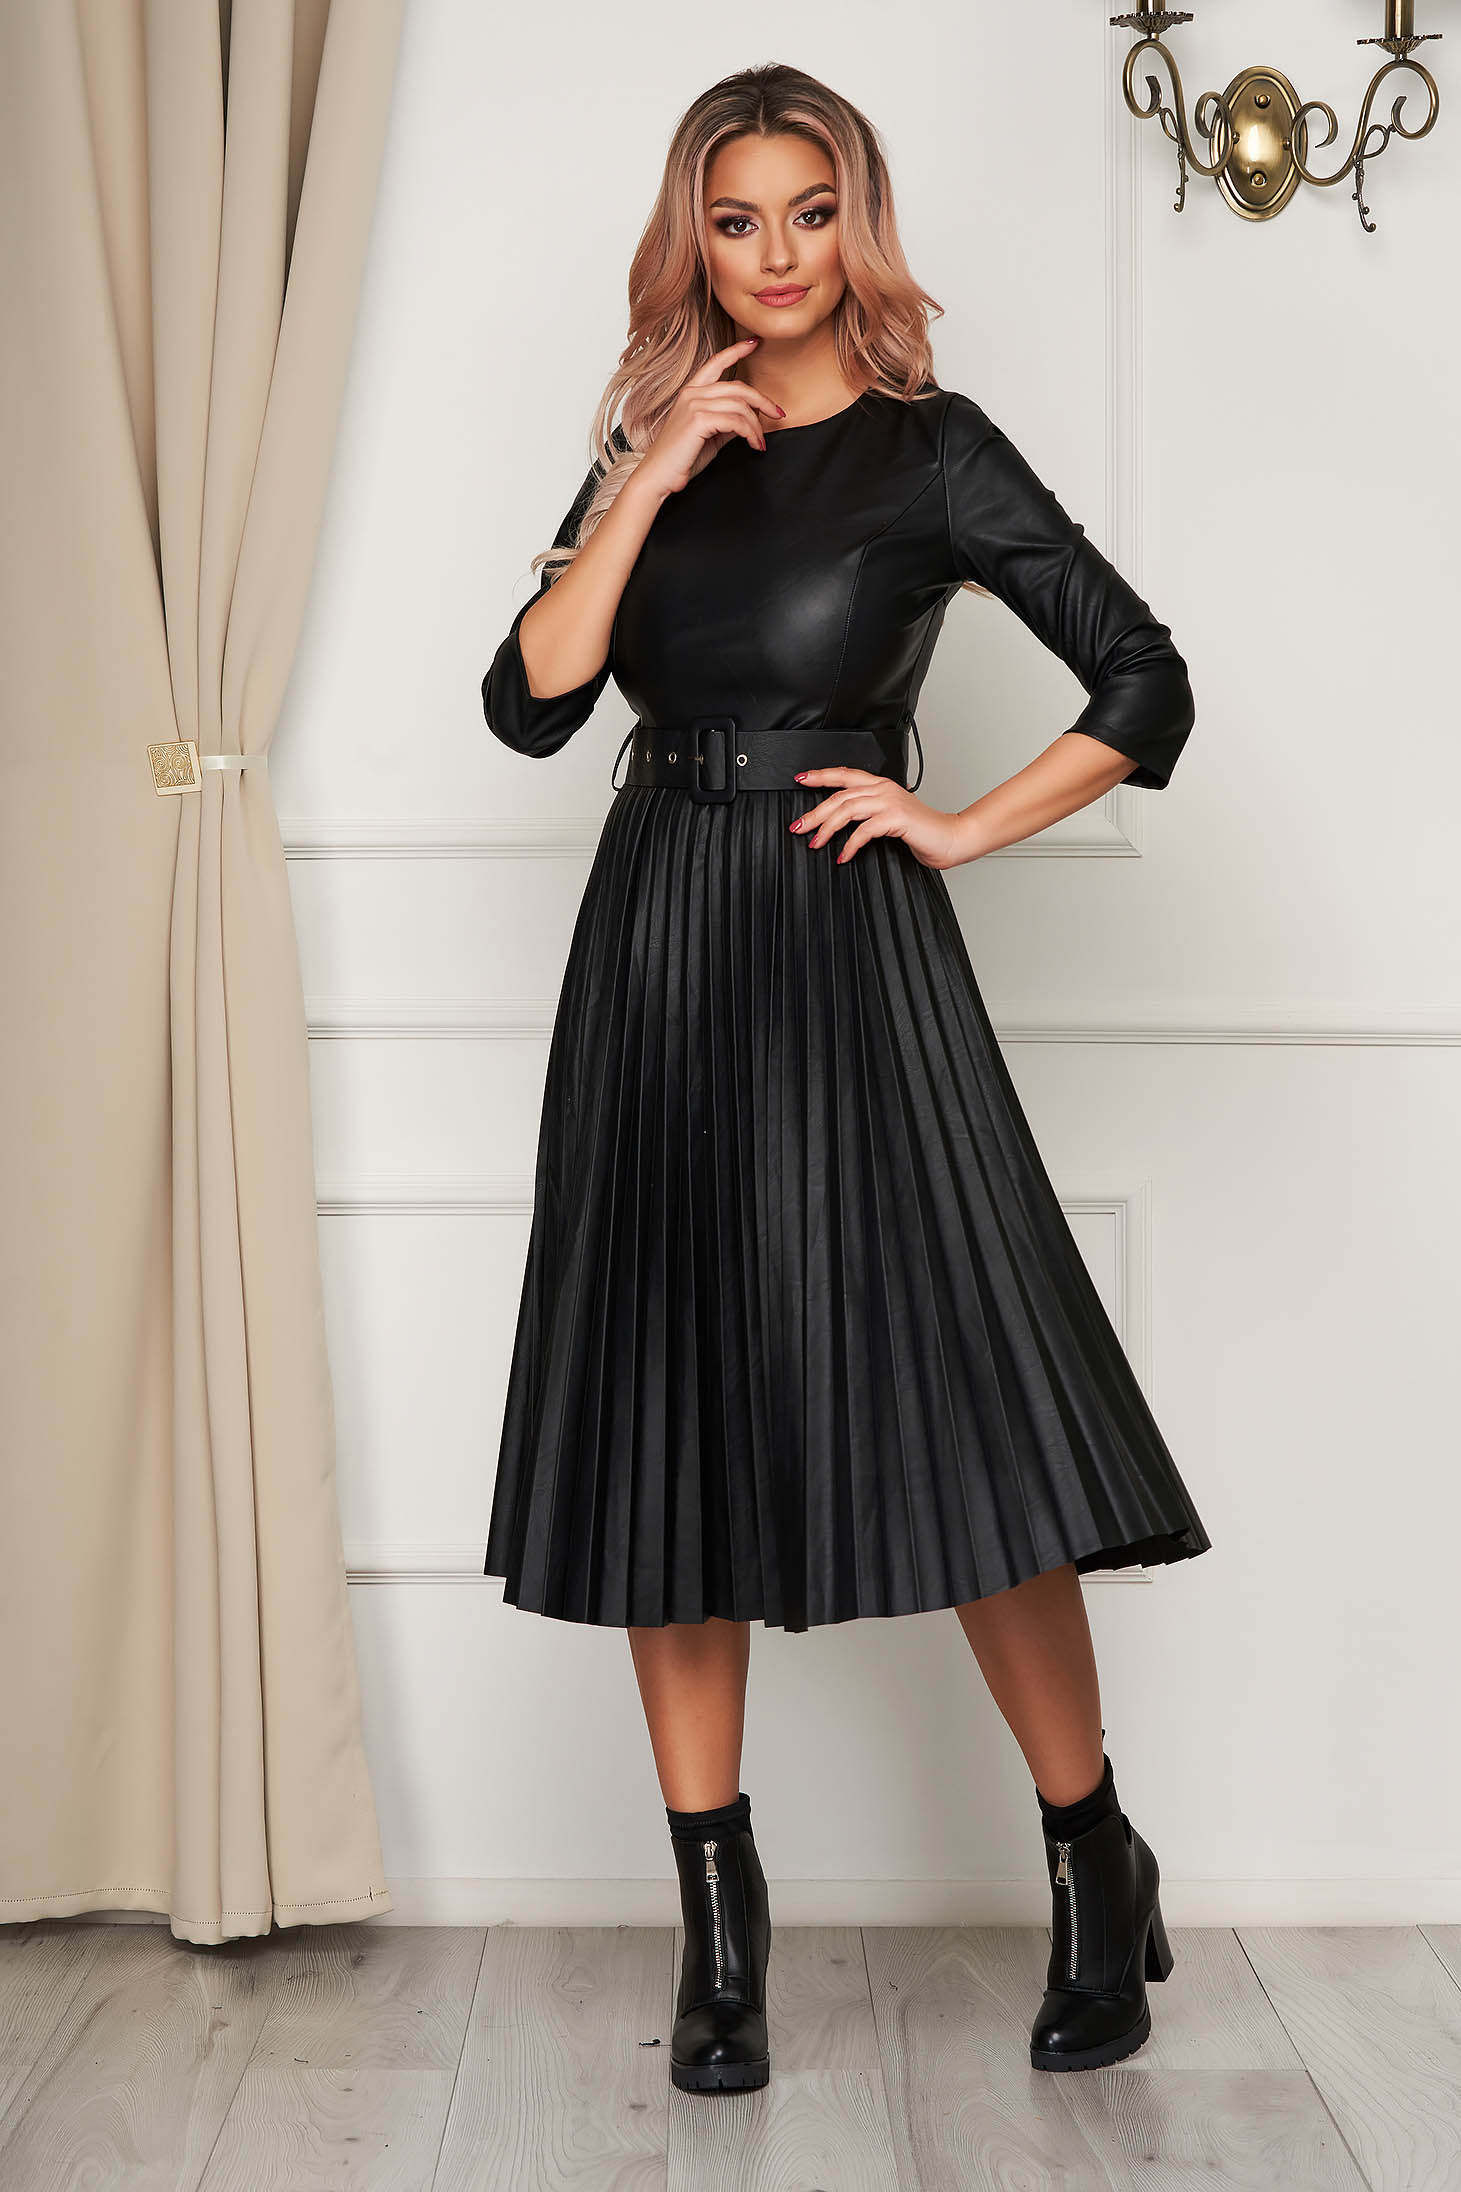 Black dress midi daily folded up from ecological leather cloche